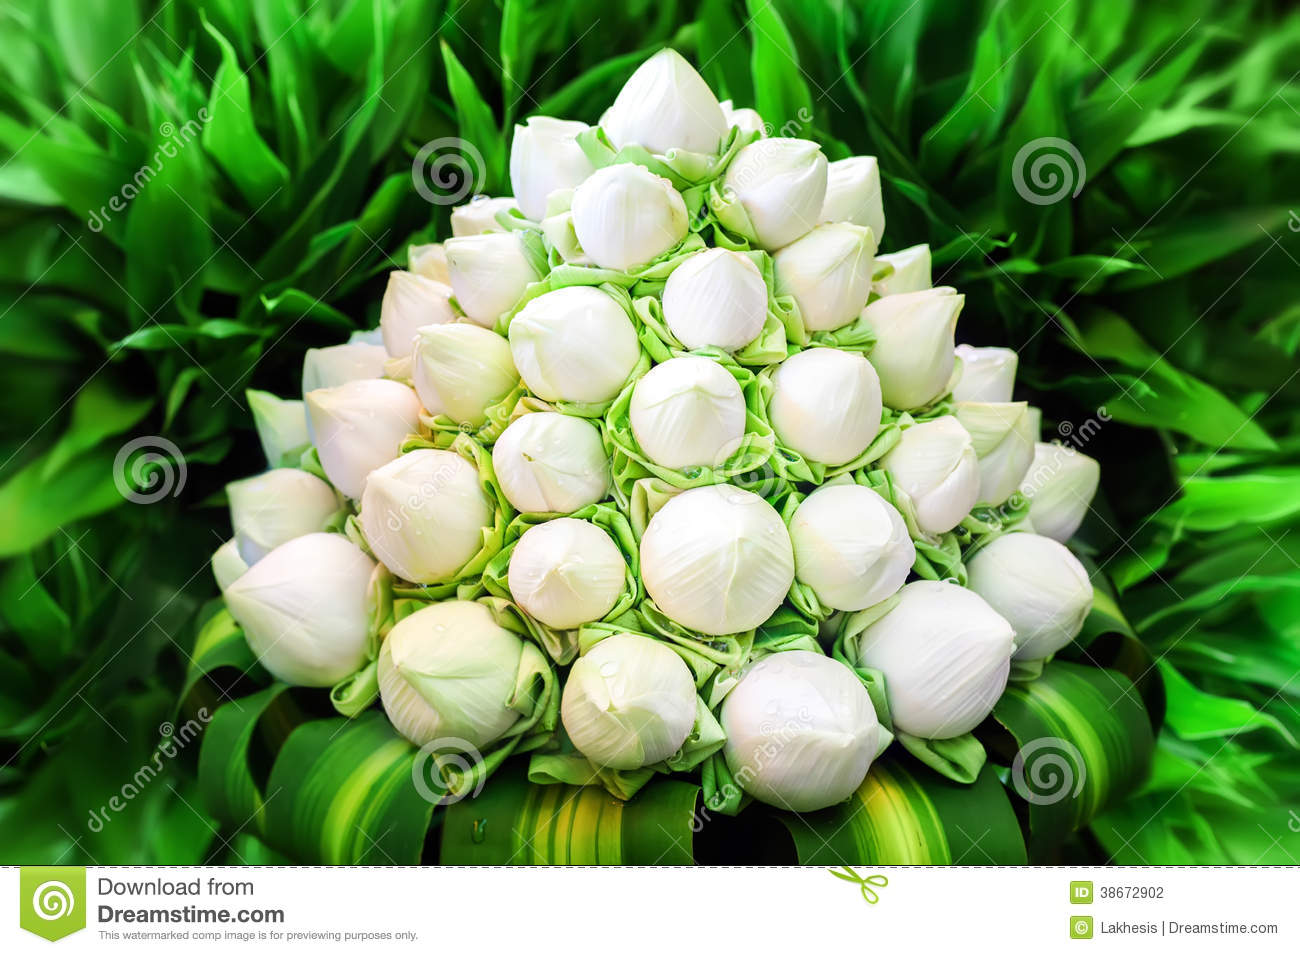 White Lotus Flowers In Bouquet Stock Photo   Image of invitation     White lotus flowers in bouquet